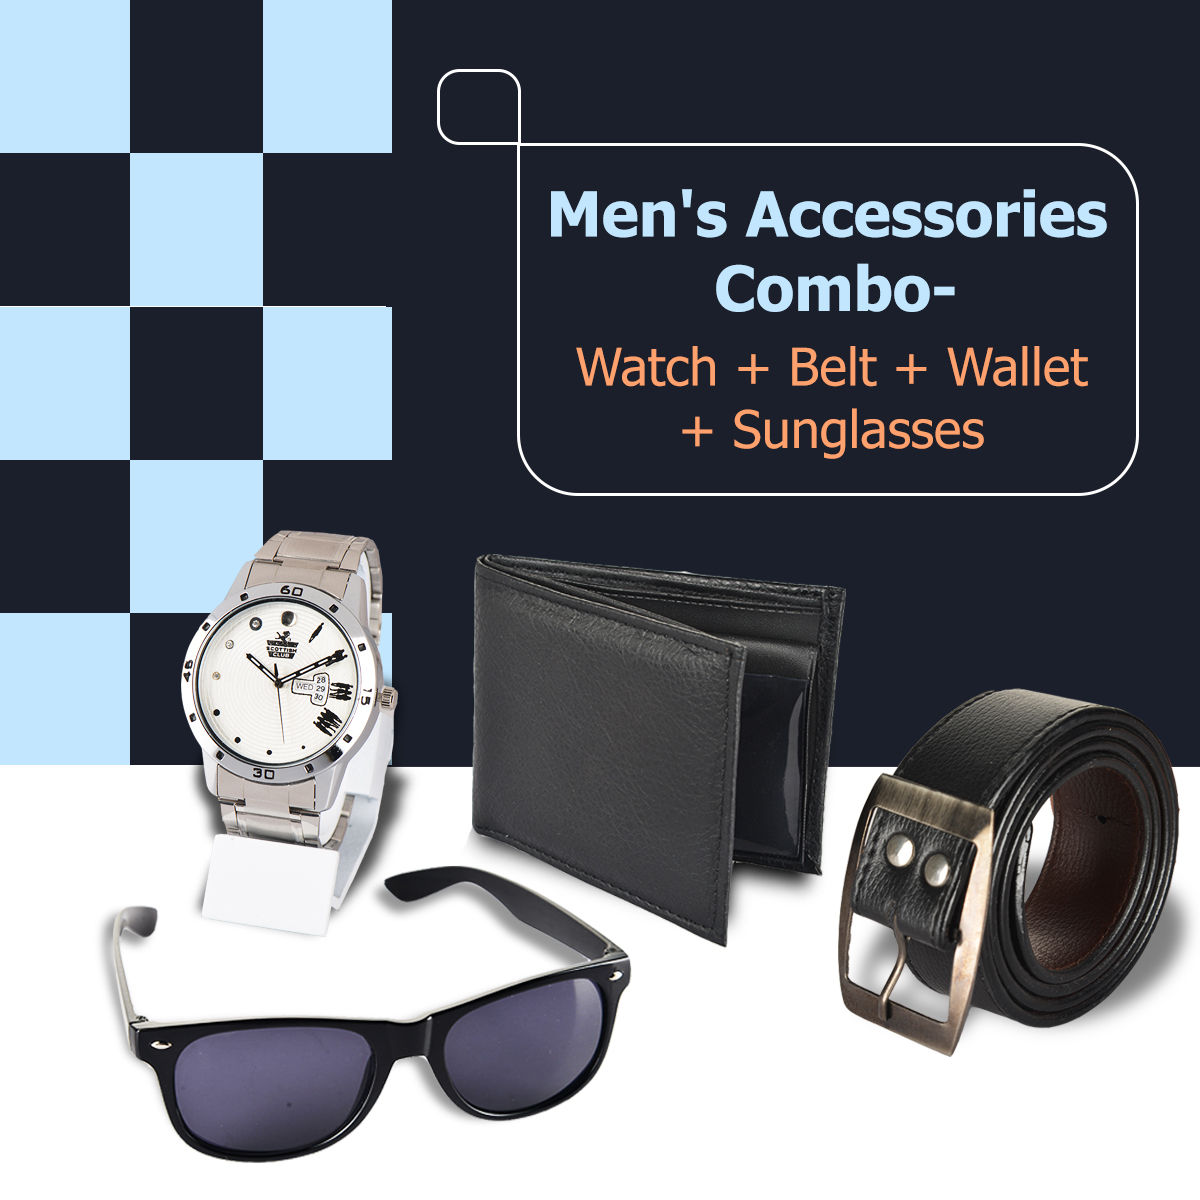 d8a266ecc19 Buy Men s Accessories Combo - Watch + Belt + Wallet + Sunglasses Online at Best  Price in India on Naaptol.com